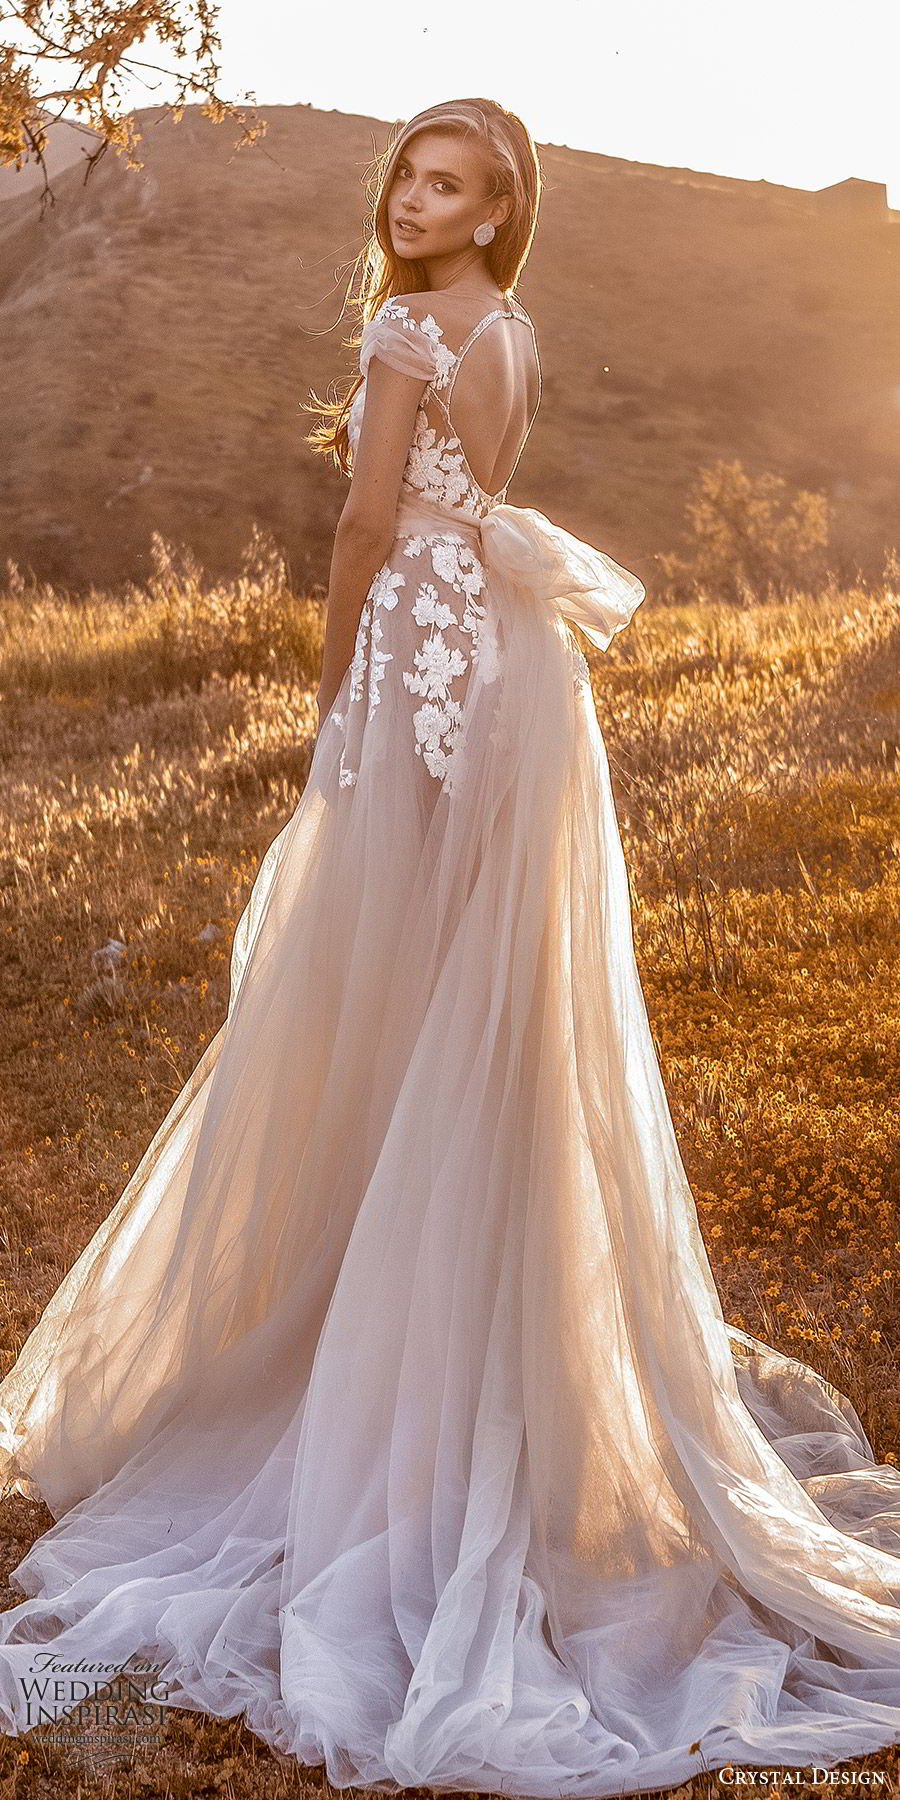 crystal design 2020 couture bridal cap sleeves sweetheart neckline embellished bodice a line ball gown wedding dress (7) blush color romantic princess keyhole back chapel train sv